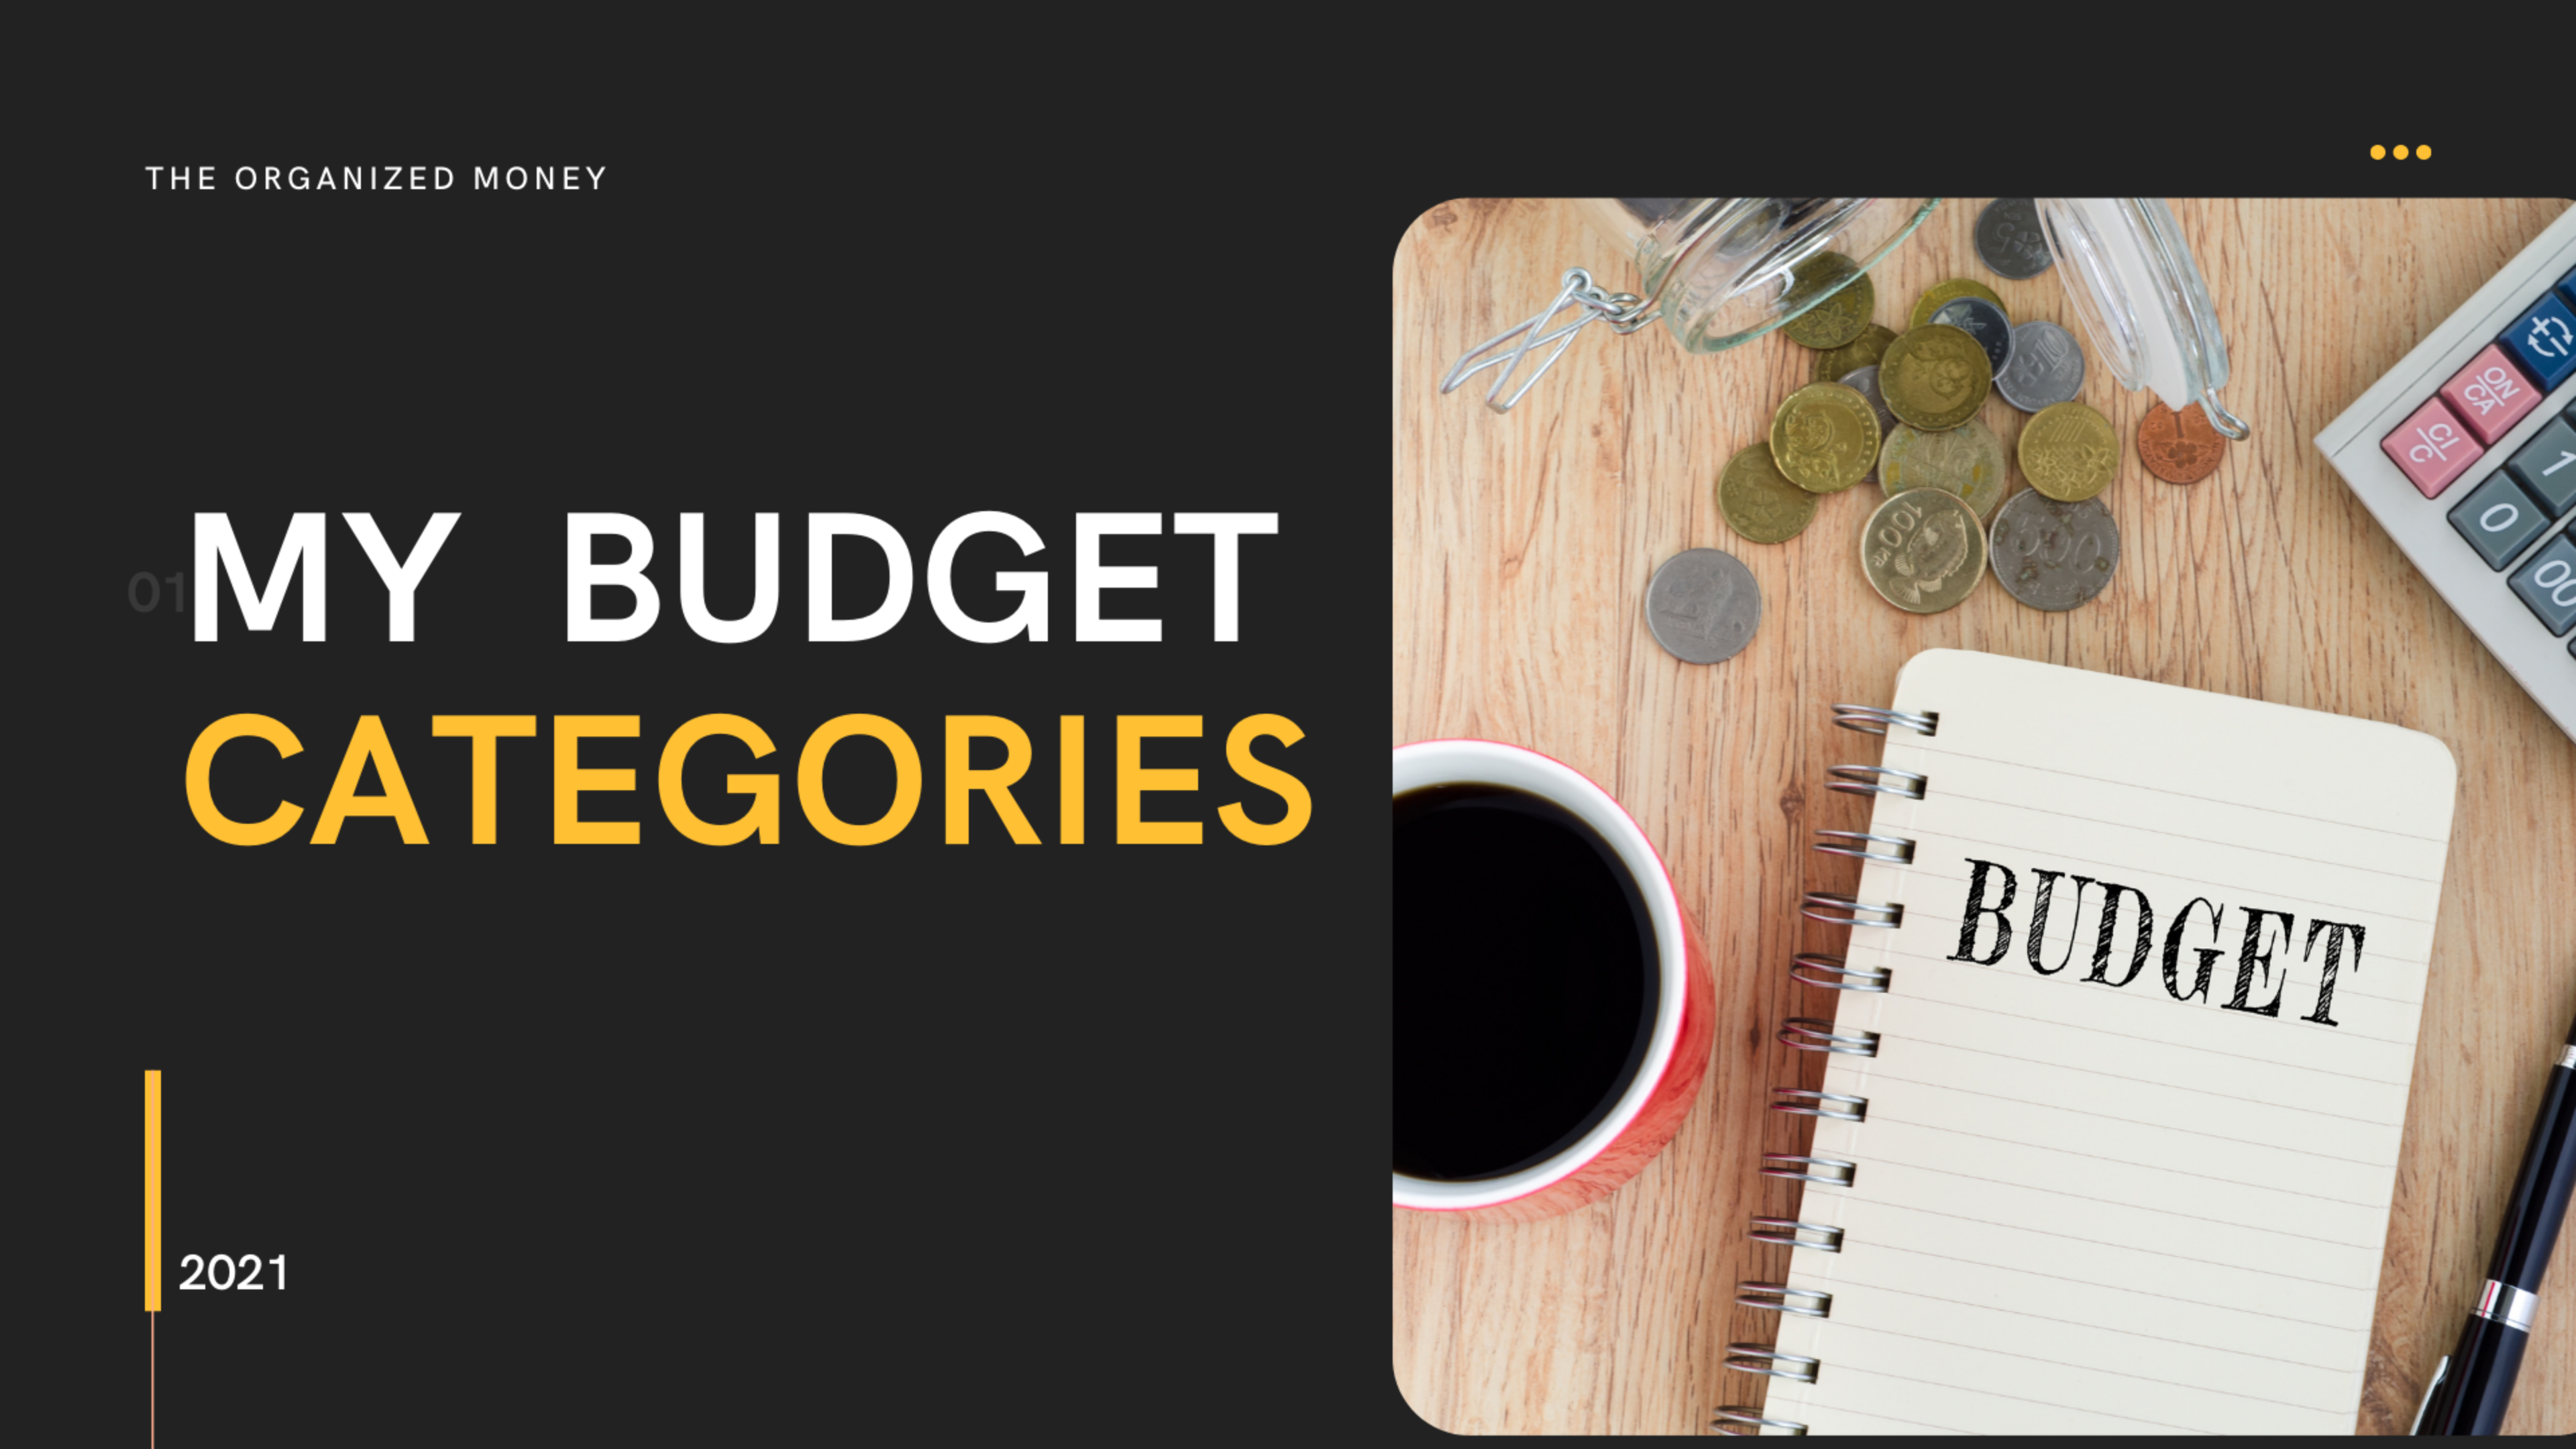 Creating Your Budget Categories